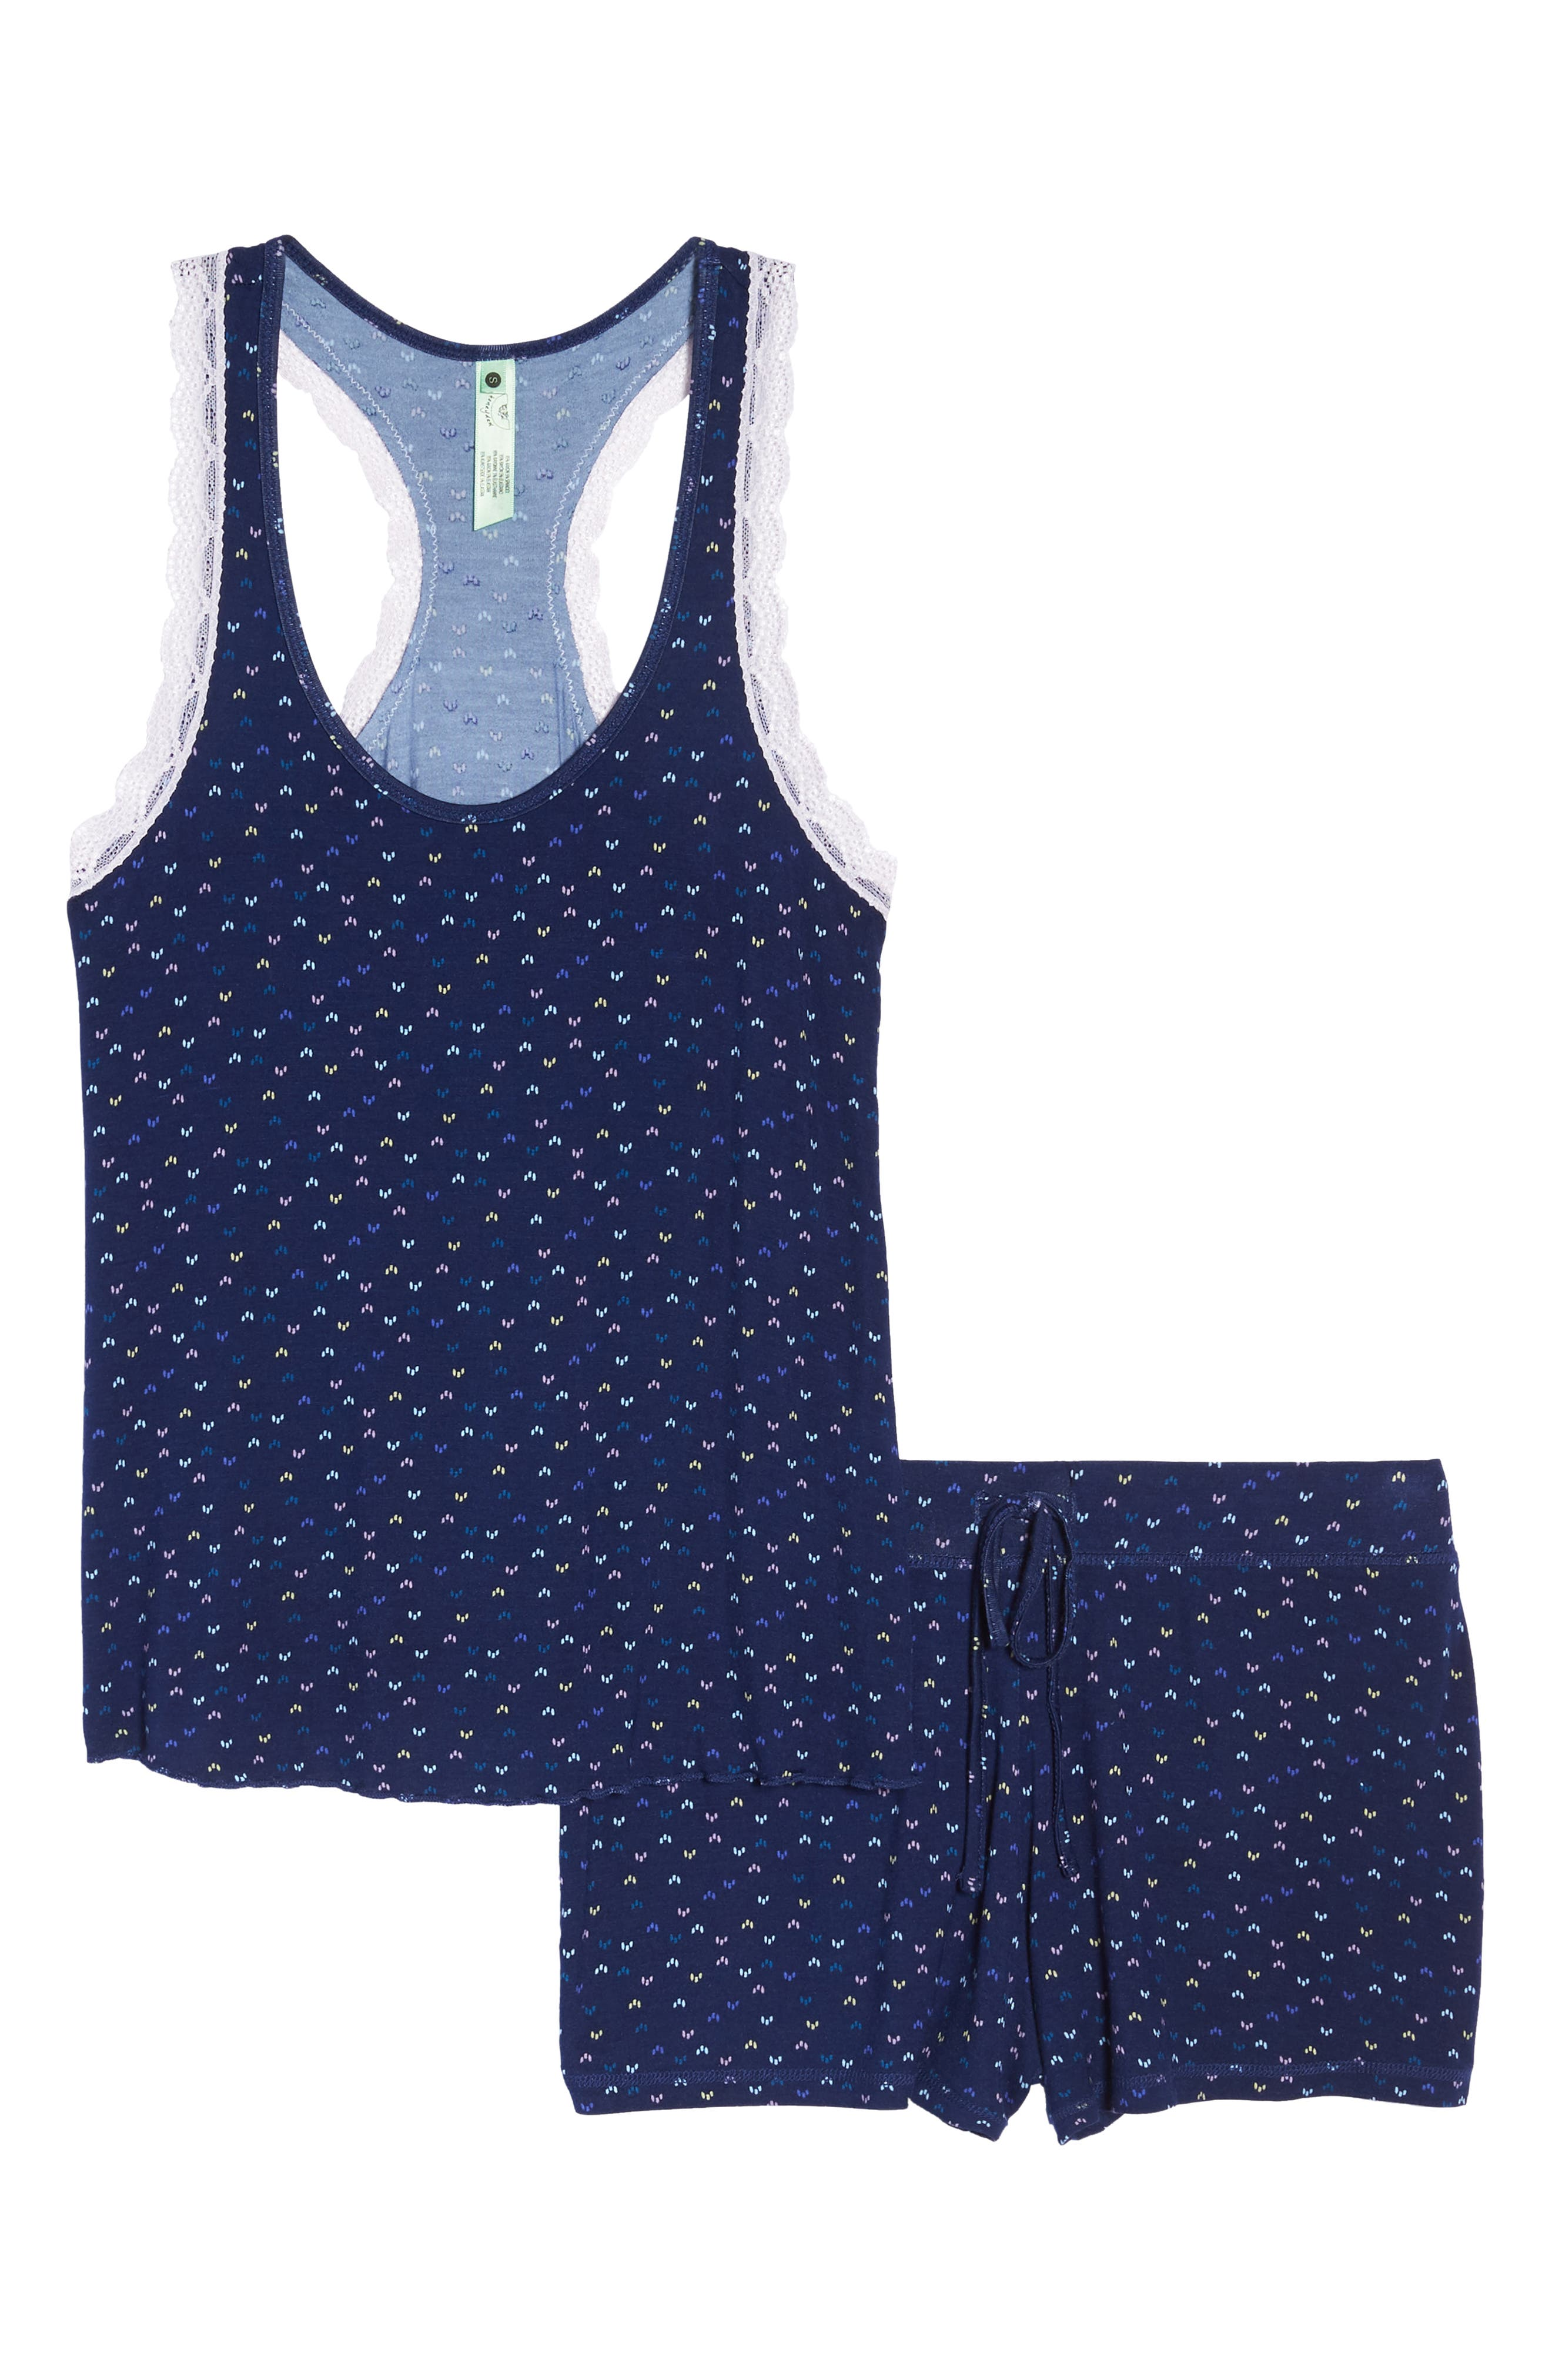 All American Lace Trim Short Pajamas,                             Alternate thumbnail 6, color,                             Midnight Moon